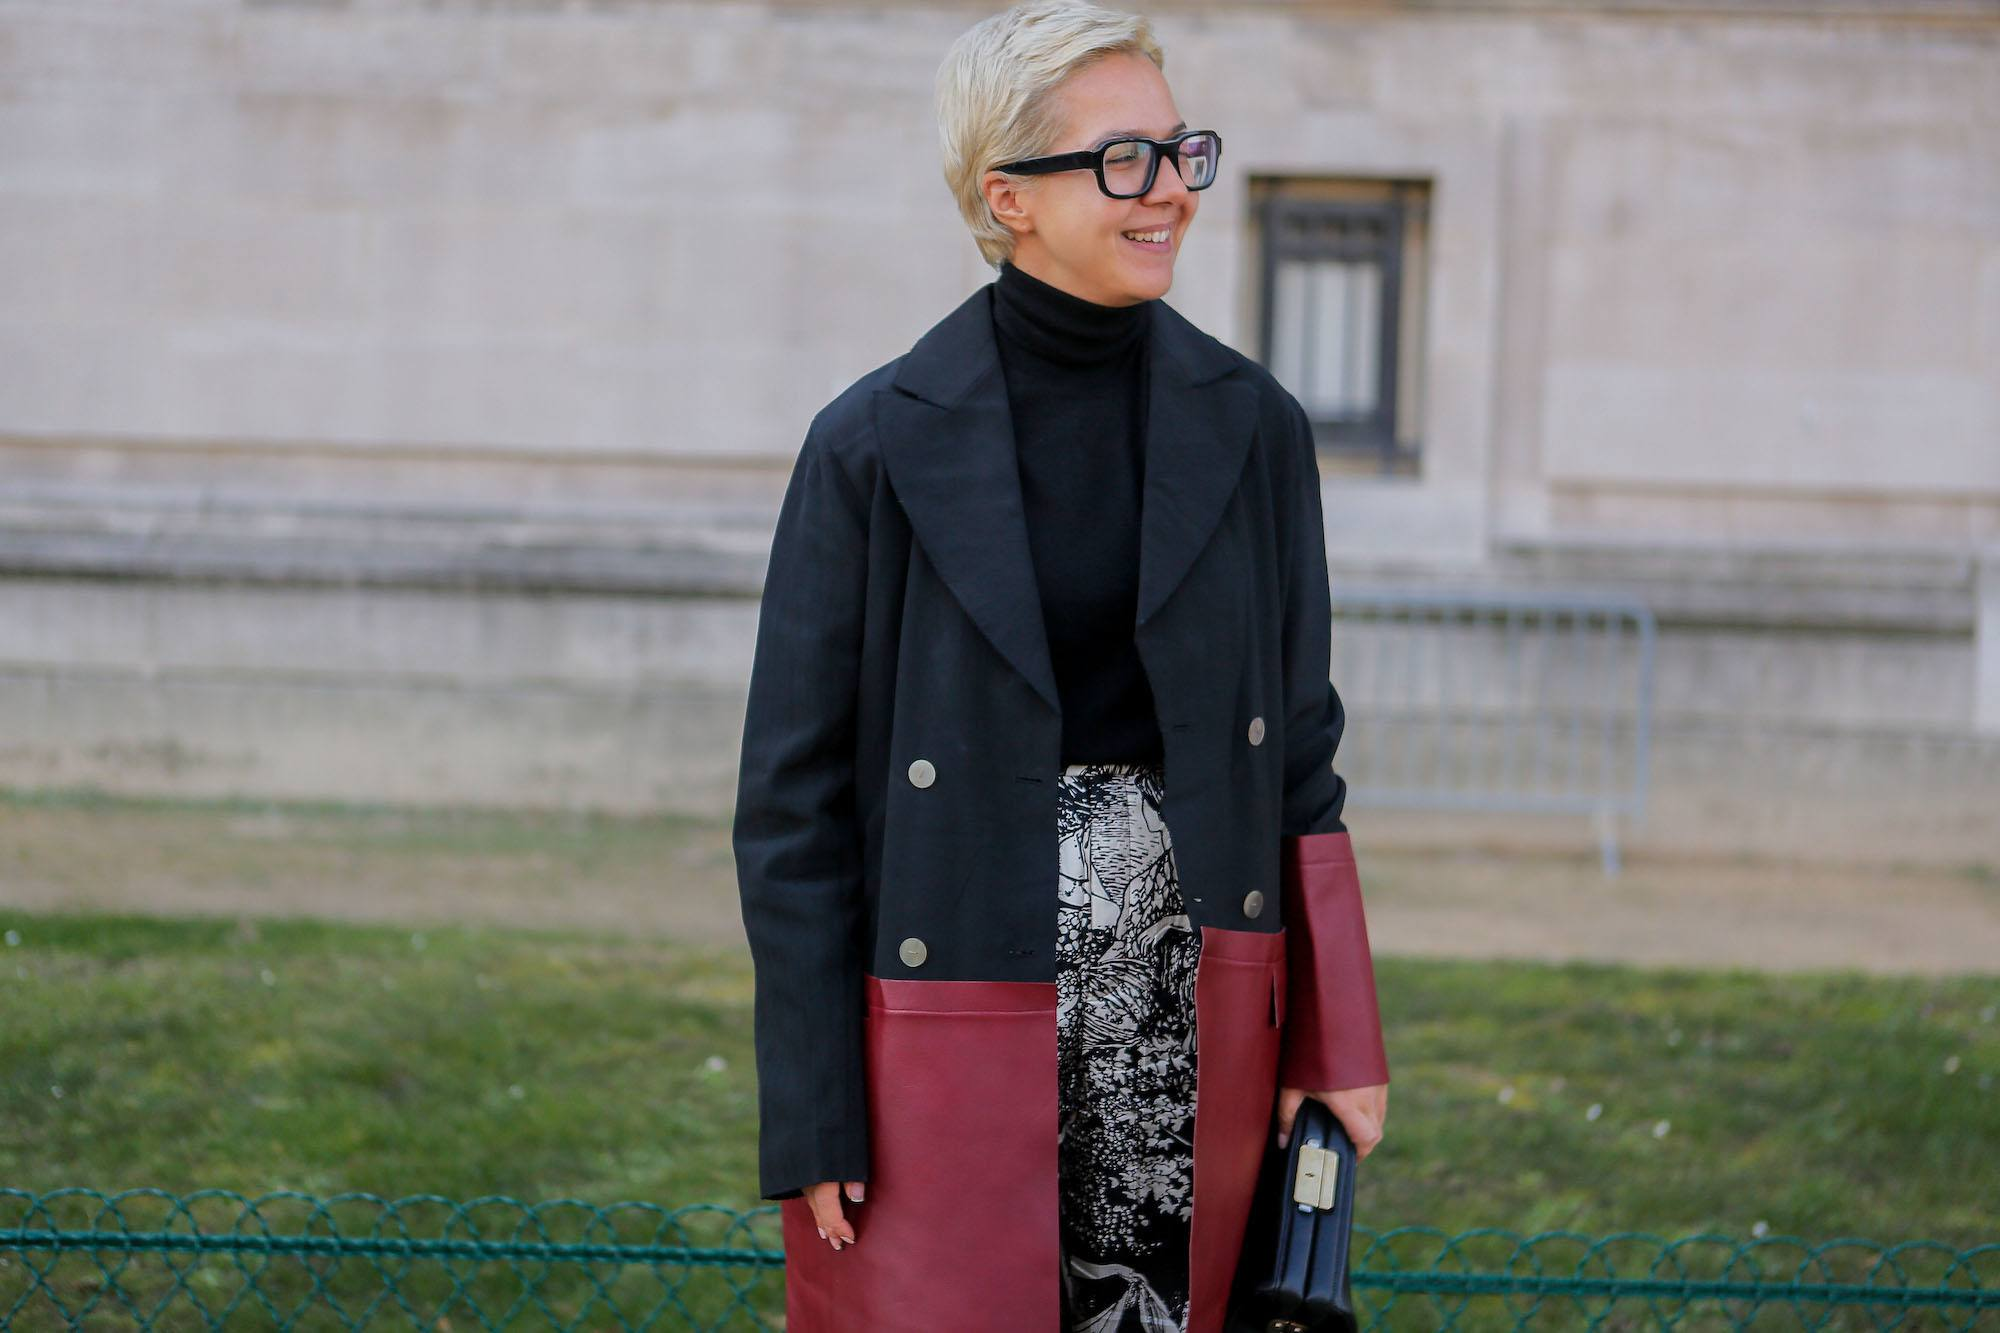 Pixie pirang StreetDay5 Paris Fashion Week 2018.